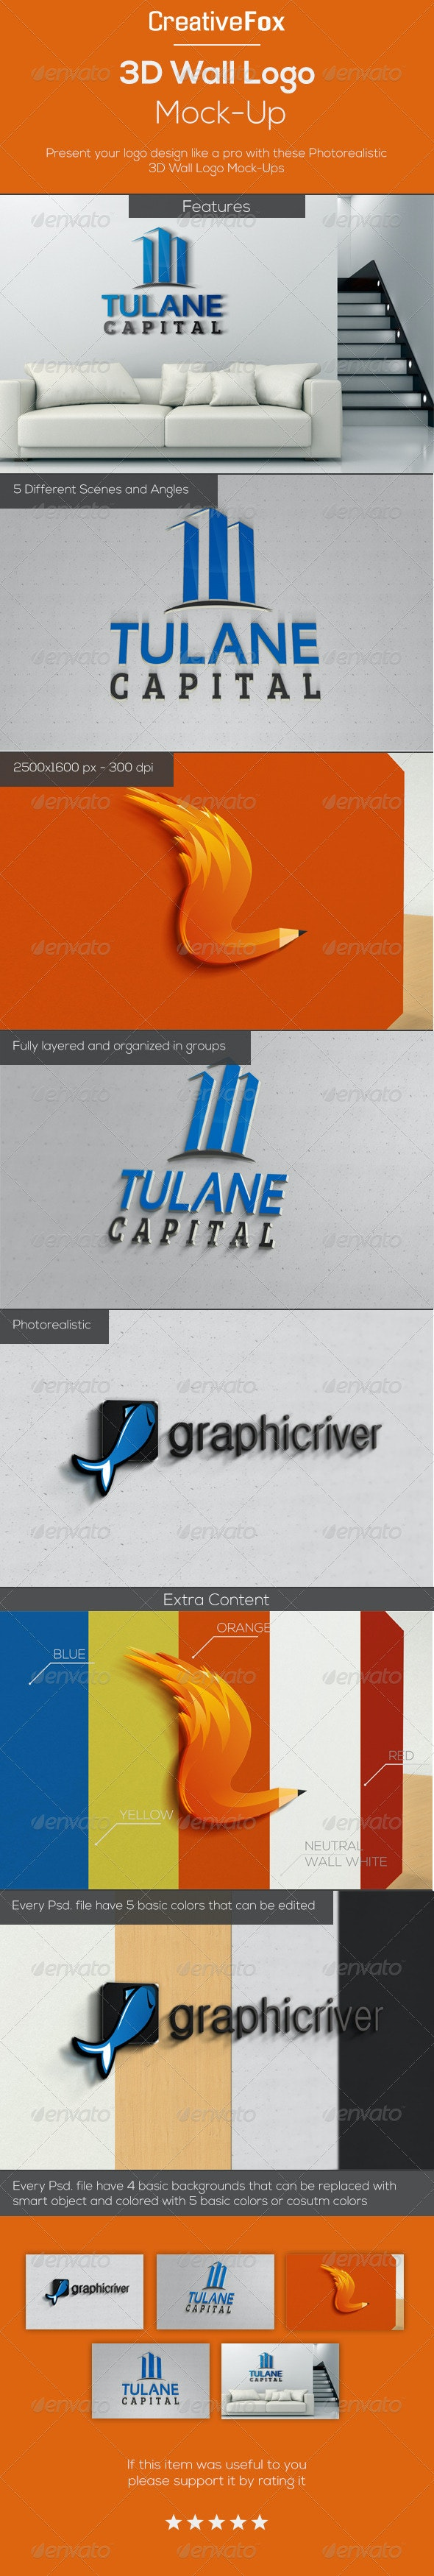 3D Wall Logo Mock-Up - Logo Product Mock-Ups